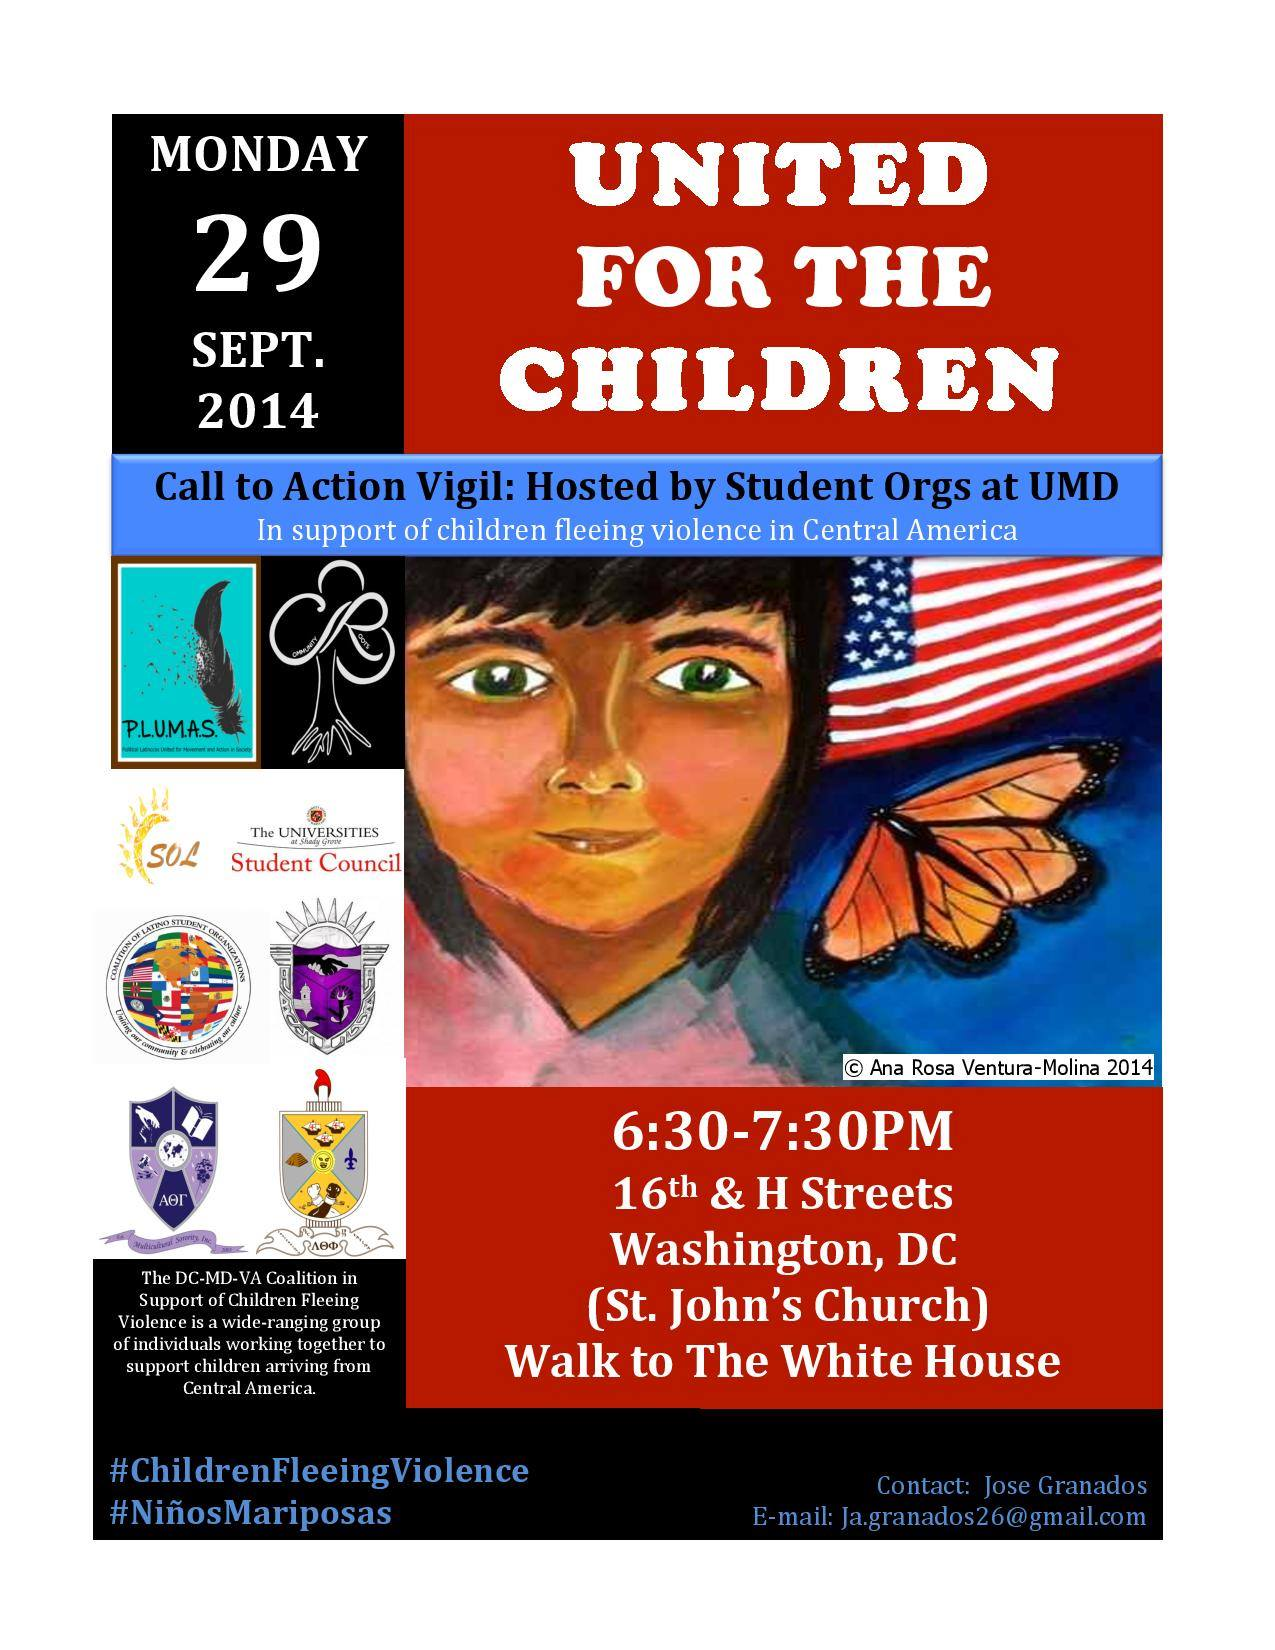 Monday september 29th migrant children vigil and call to action